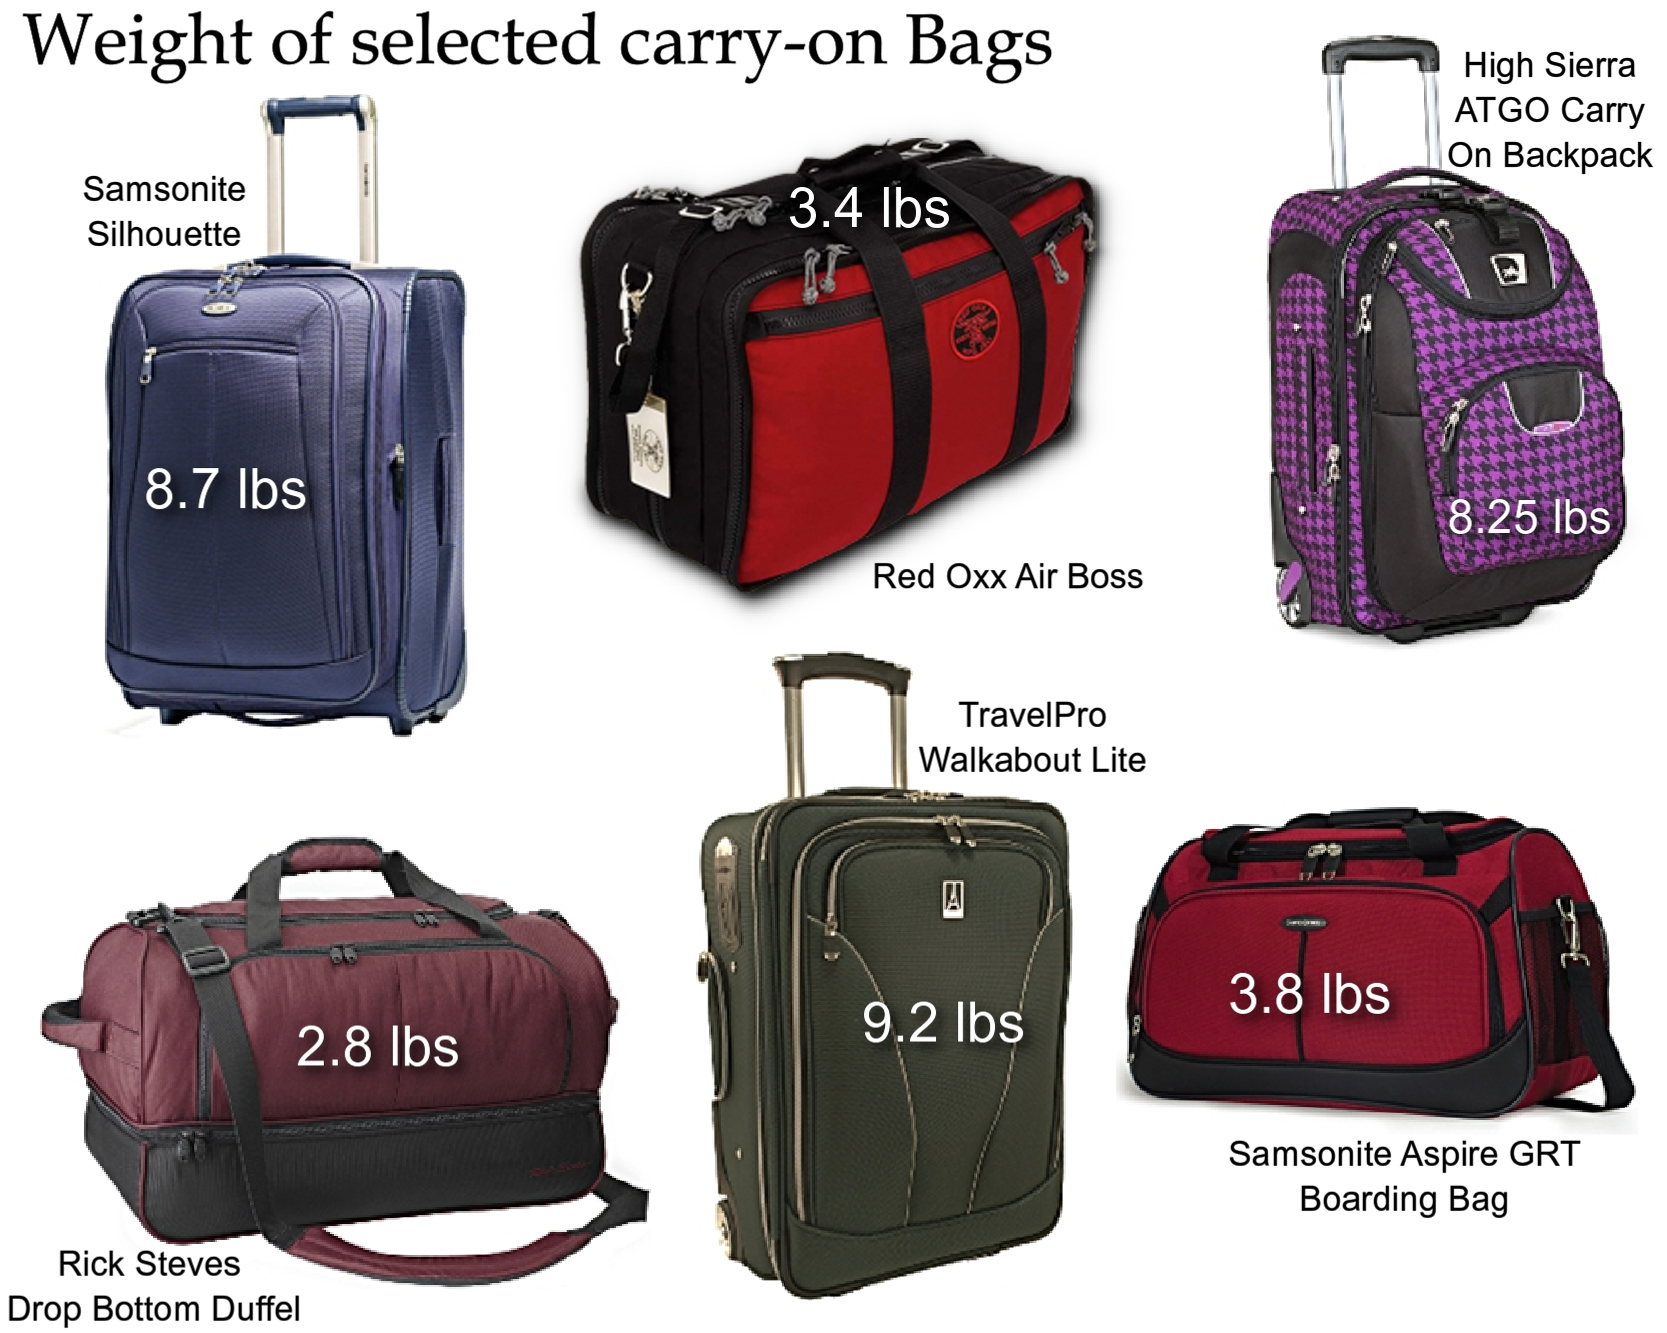 carry on bags weight comparison